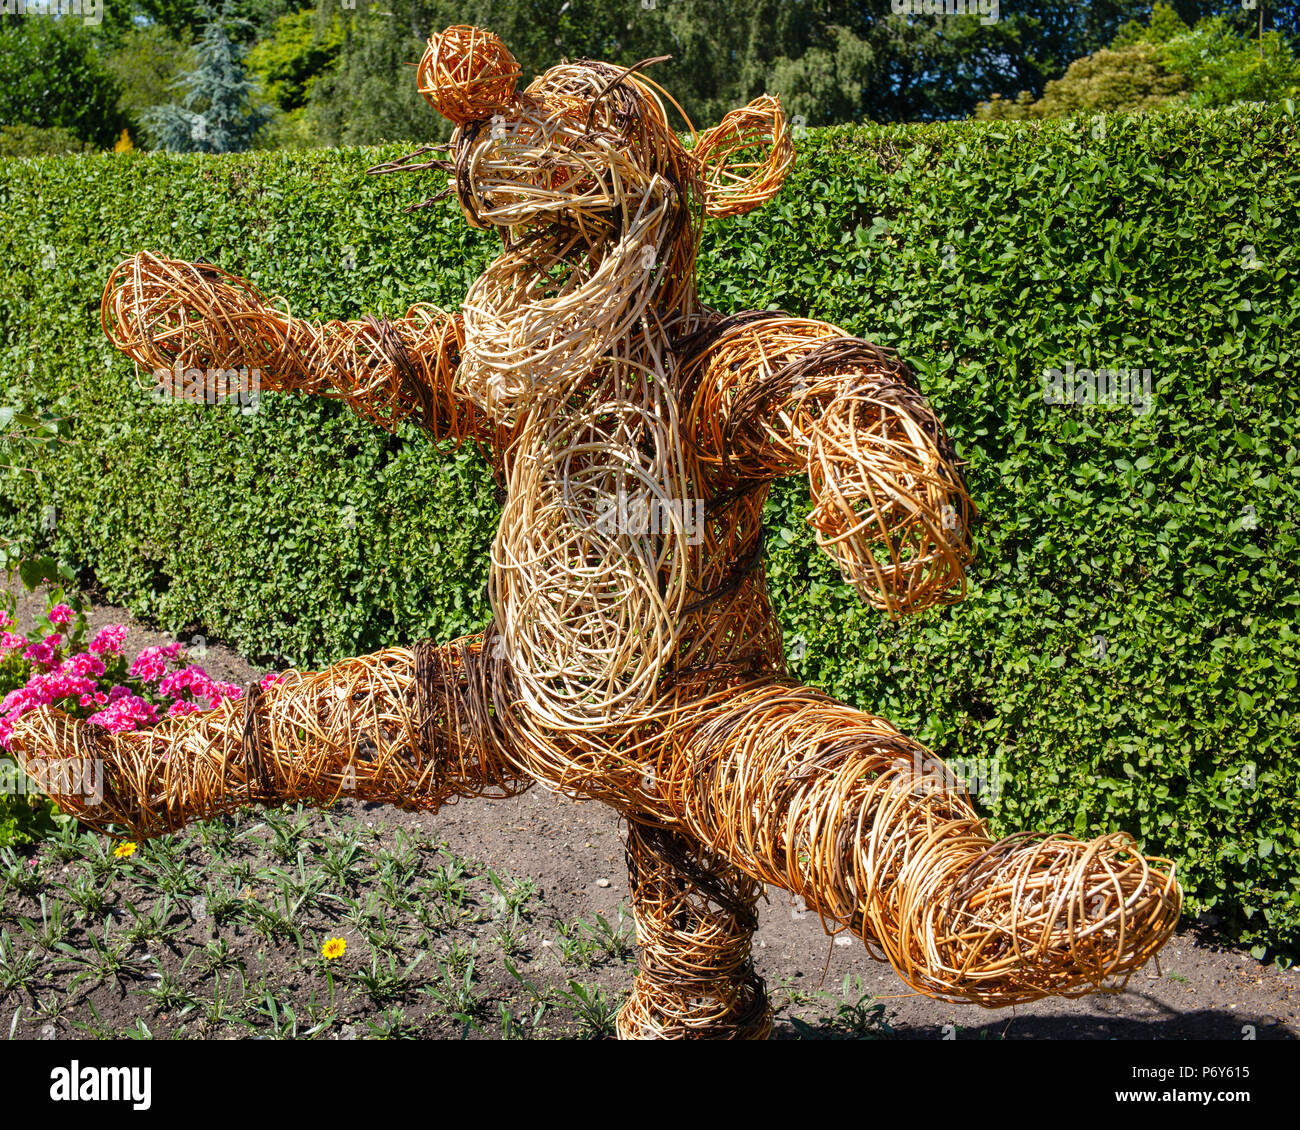 Tigger leaping for joy after eighty years of fun, Homestead Park, York, UK Stock Photo